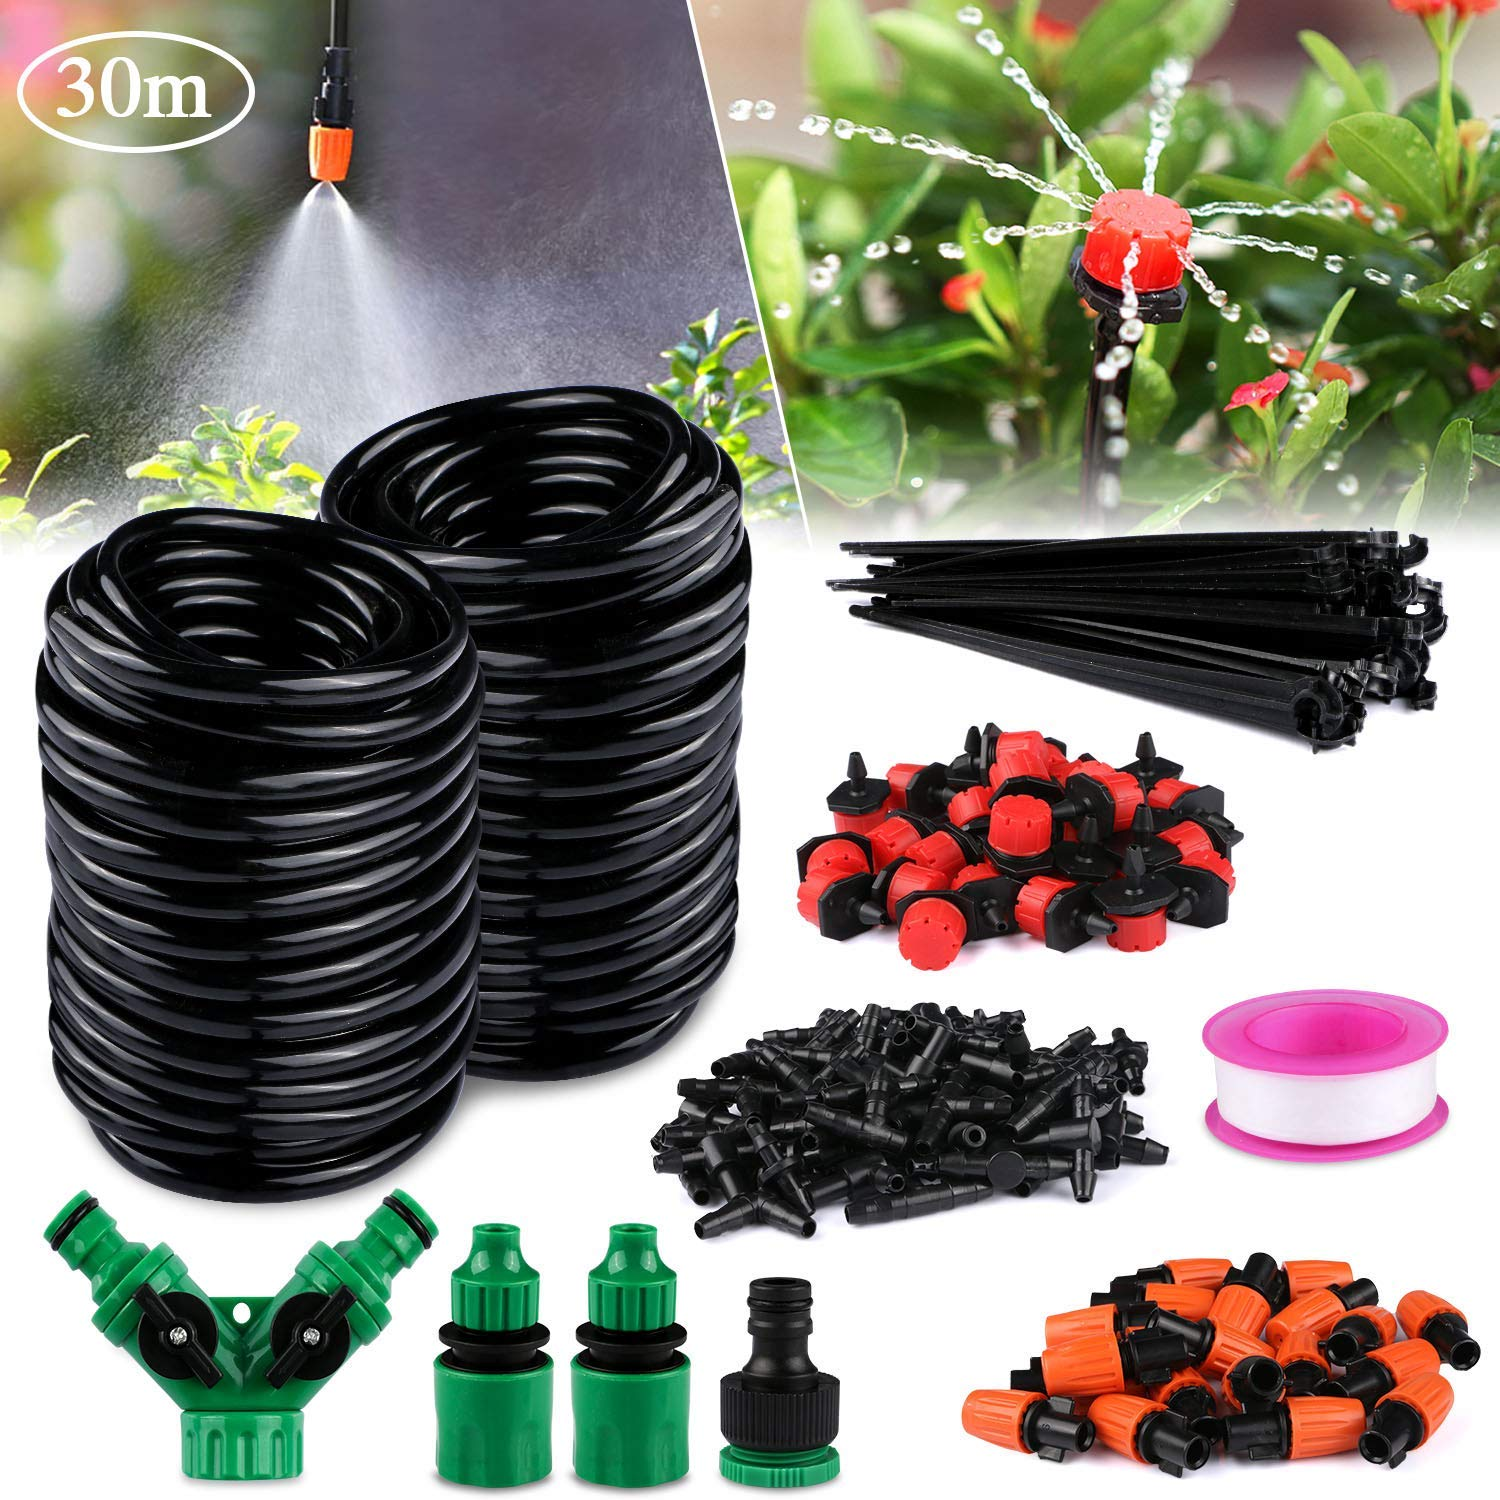 Philonext Drip Irrigation,100ft /30M Garden Irrigation System, Adjustable Automatic Micro Irrigation Kits,1/4'' Blank Distribution Tubing Hose Suit for Garden Greenhouse, Flower Bed,Patio,Lawn (30M) by Philonext